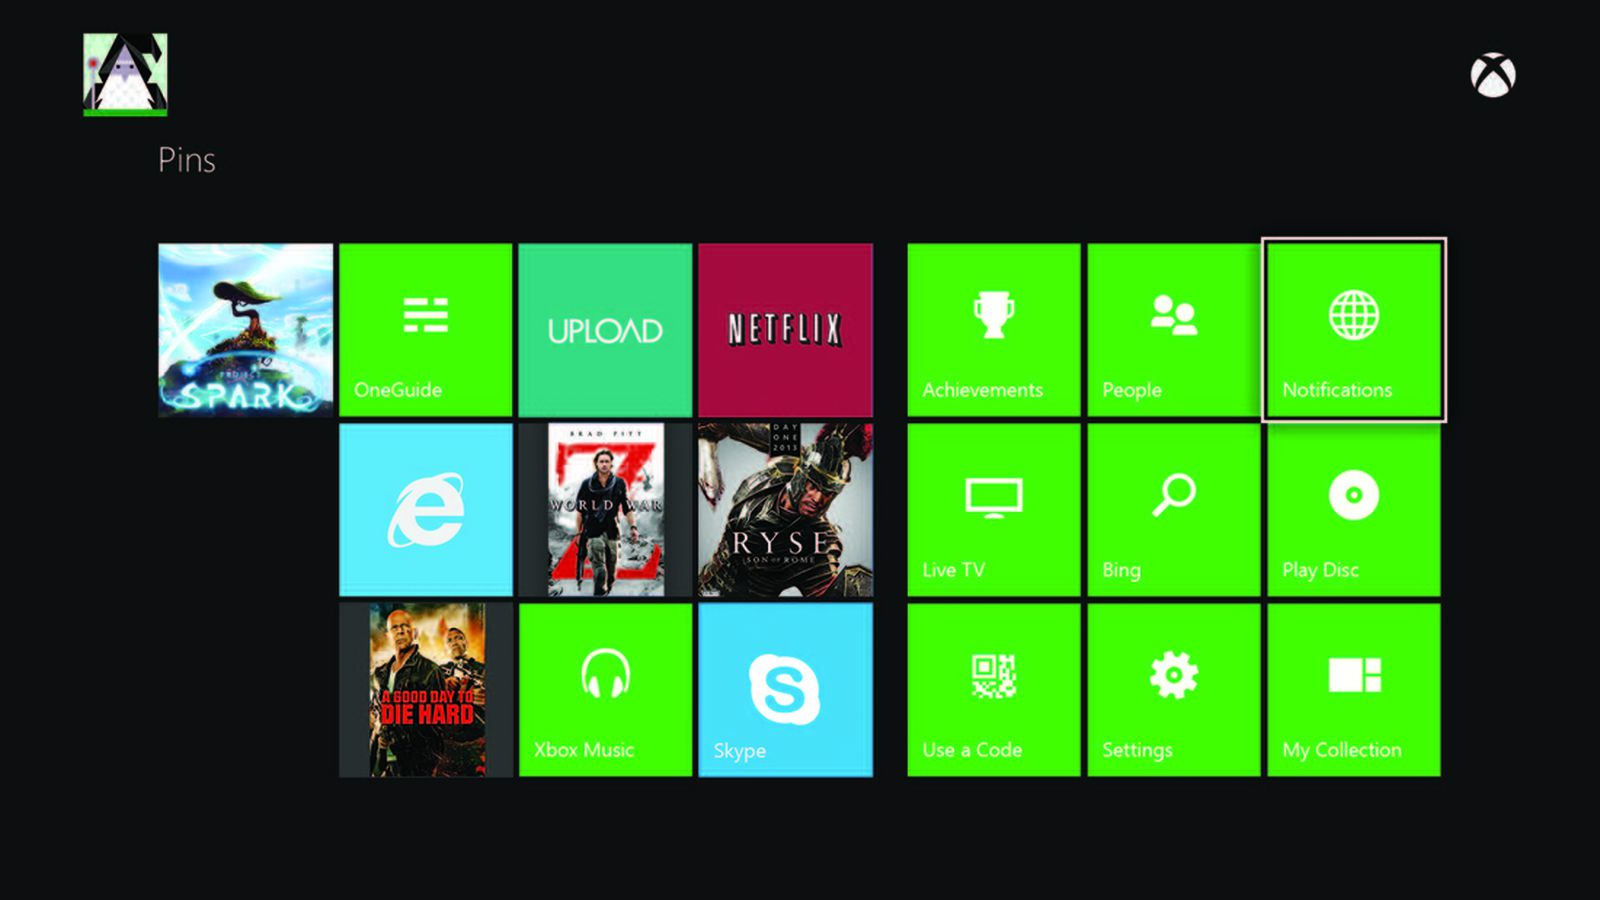 Xbox Ones Recents Home Screen Based On 360 Users Playing Habits Polygon